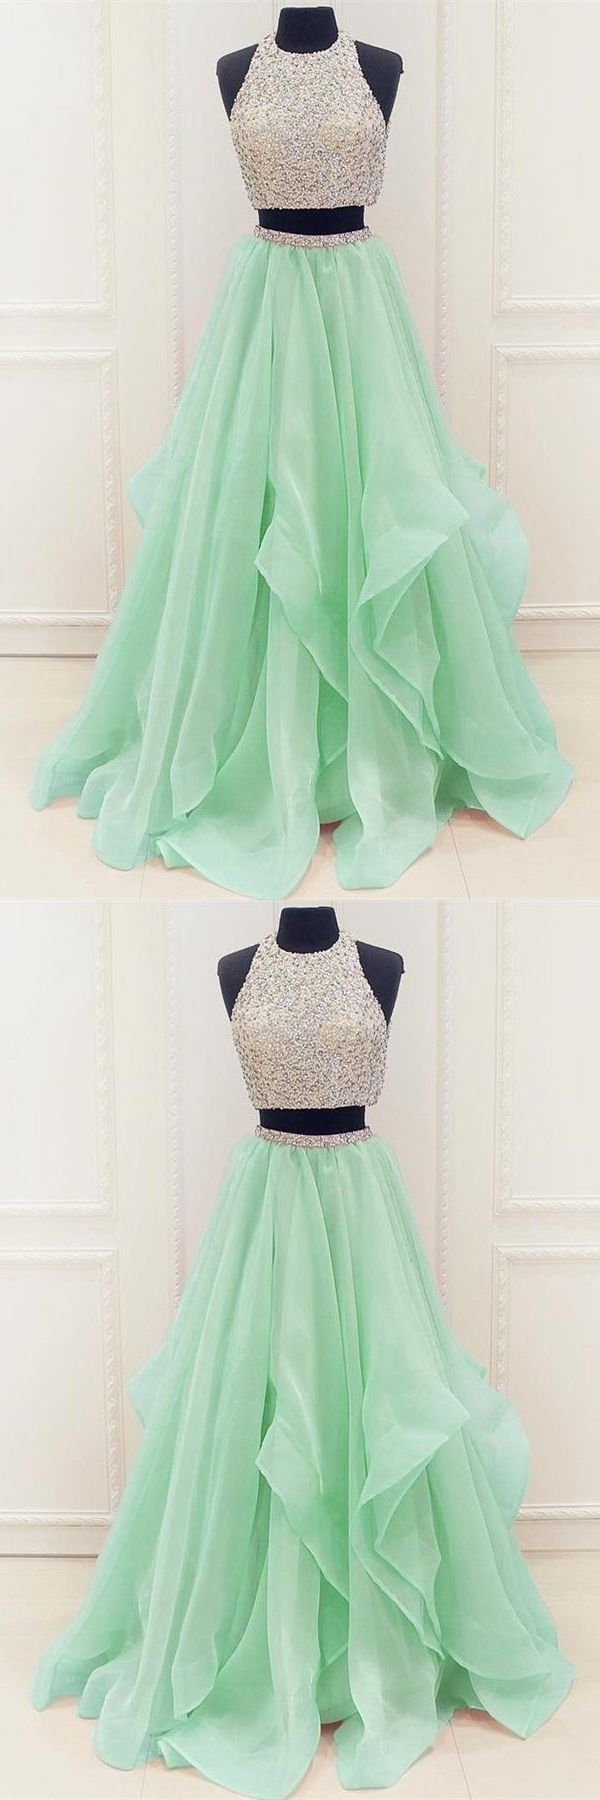 mint prom dresses,two pieces prom dresses,long prom dresses,prom dress,prom gowns,evening dresses,long homecoming dresses,evening gowns,prom dresses,prom dresses for teens,party dresses,flowy prom dresses,cheap prom dresses,beaded prom dresses,modest prom dresses